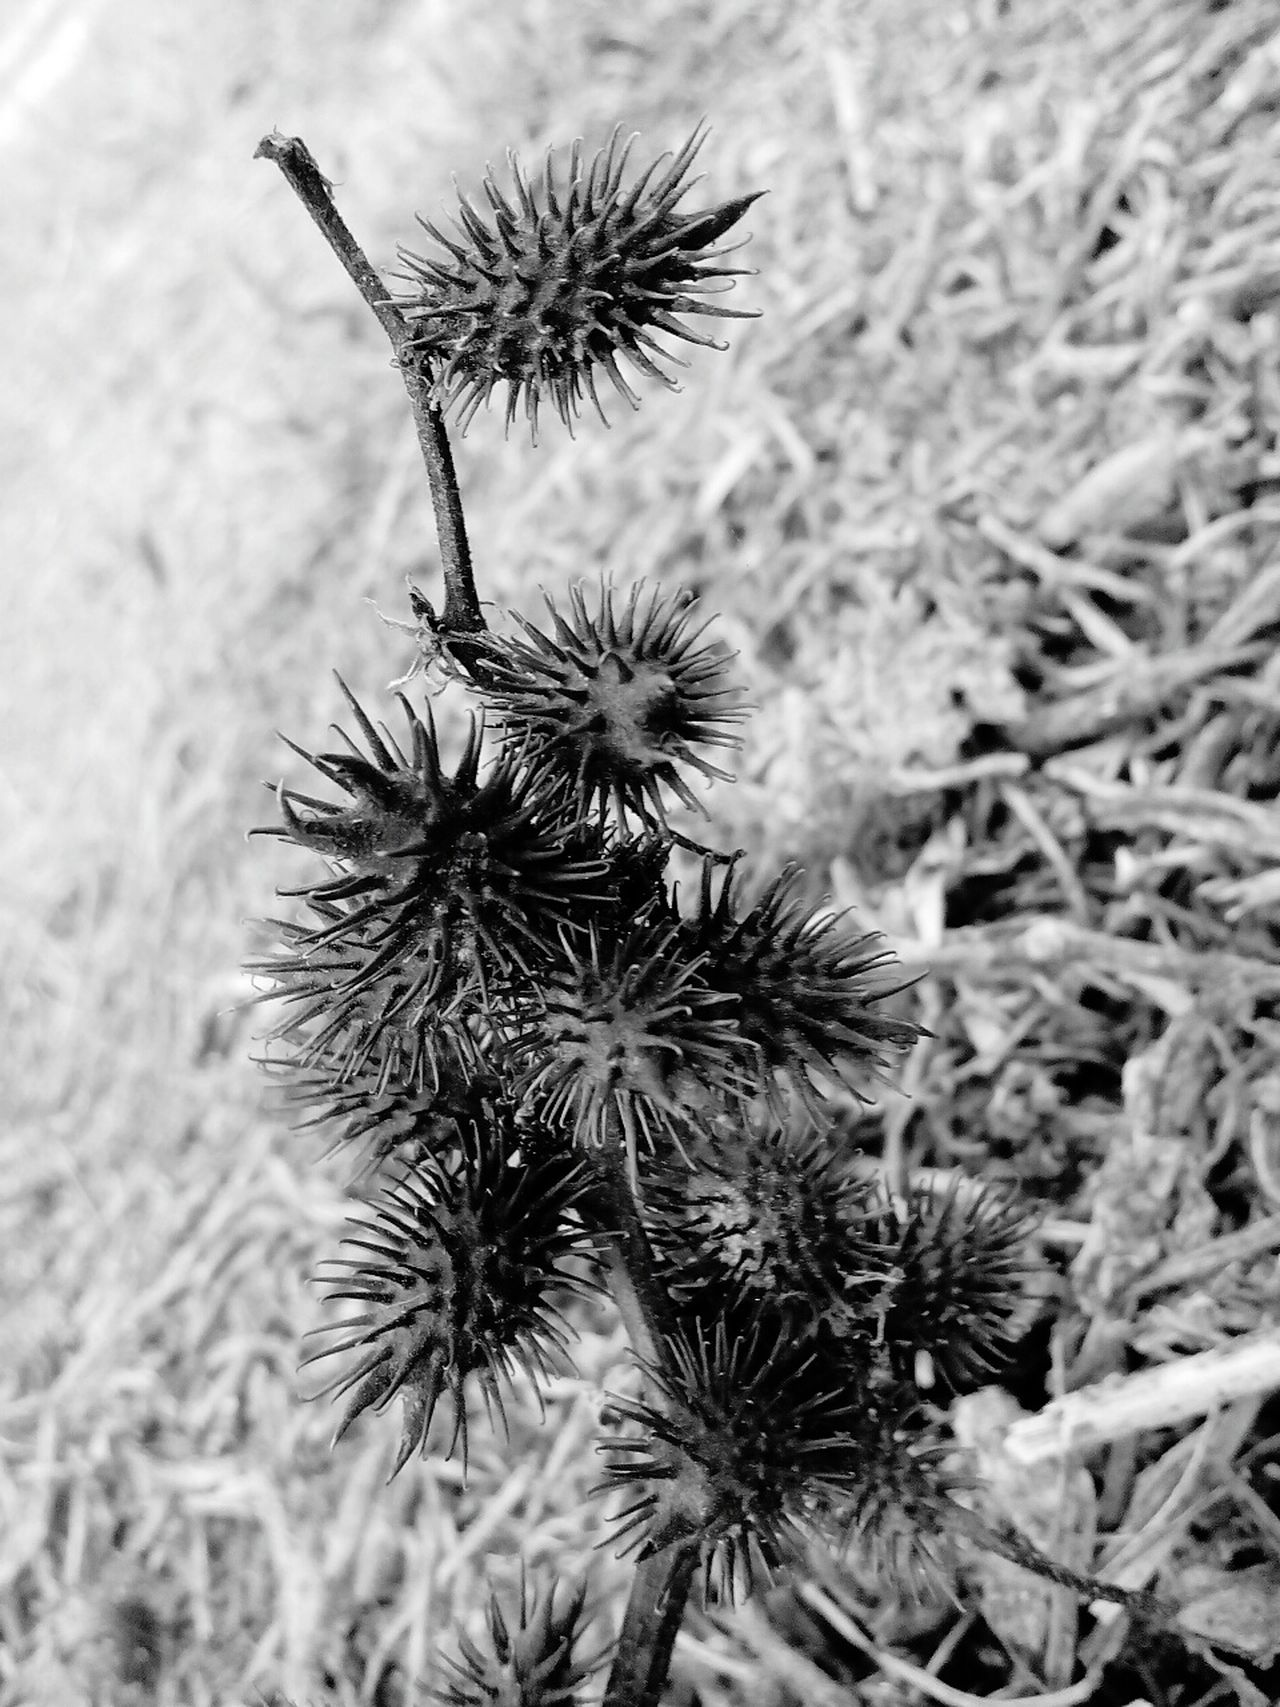 Thistle Spiked Nature Close-up Thorn Outdoors Dried Plant Sea Urchin Beauty In Nature Spiky No People Wilted Plant Freshness Day Low Angle View Place Of Worship Freshness Animal Wildlife Butterfly - Insect Pattern Cloud - Sky Built Structure Beauty In Nature Animals In The Wild High Angle View